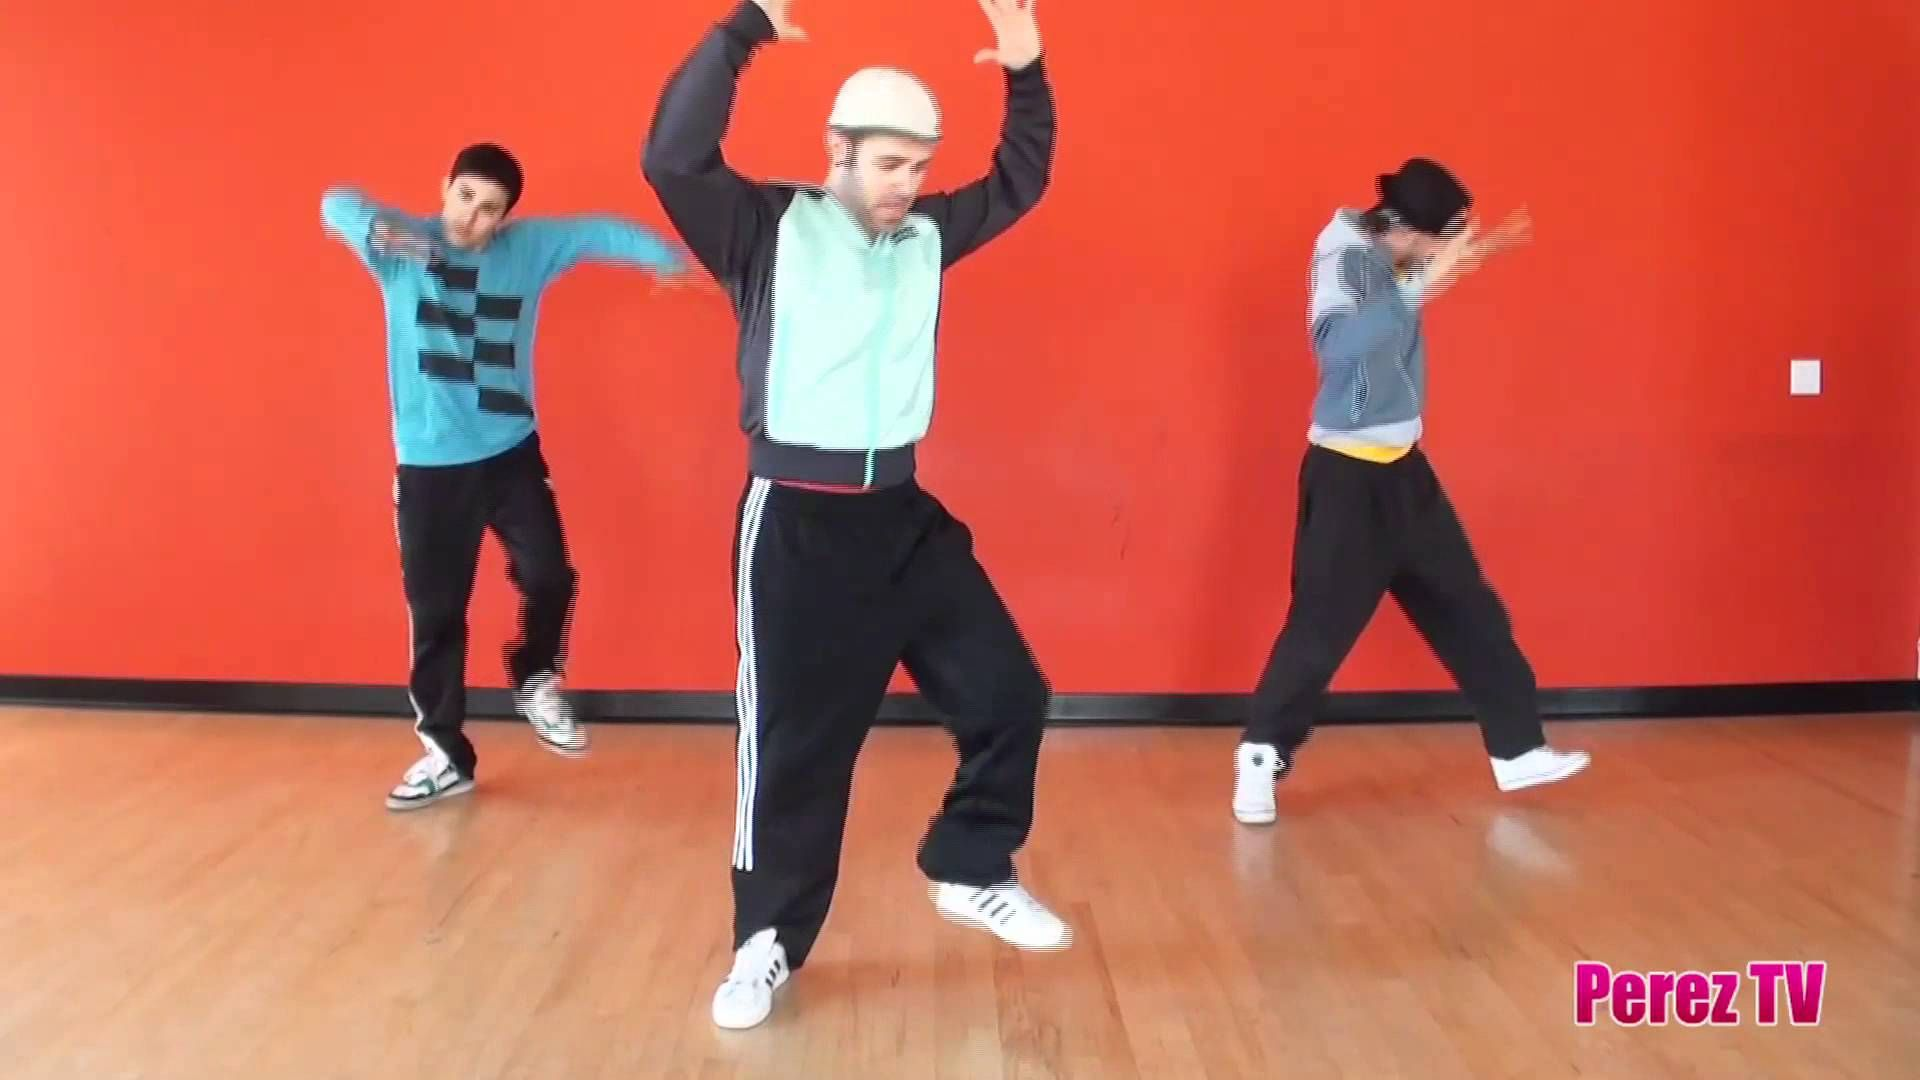 chair exercise justin timberlake ergonomic white easy dance tutorial to the song party rock anthem